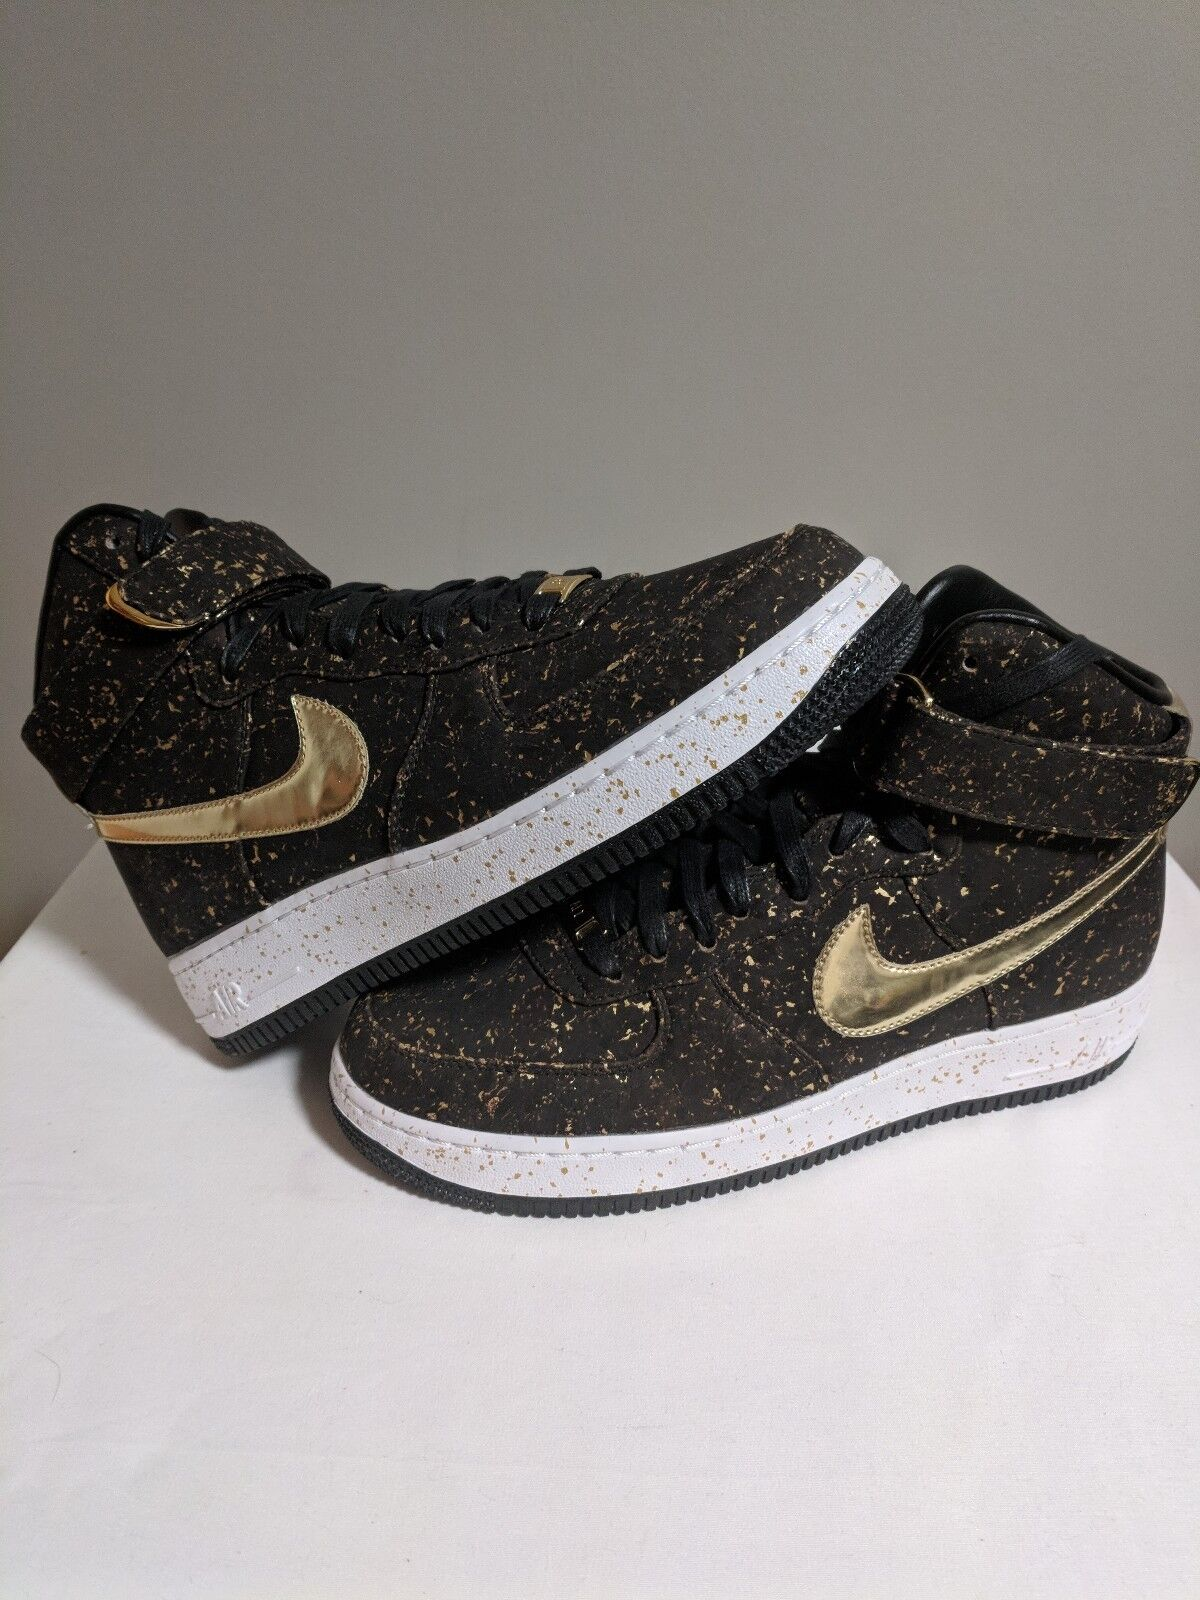 Nike Air Force 1 High Brown Cork Championship kd  SF iD 8.5 gold white mid low